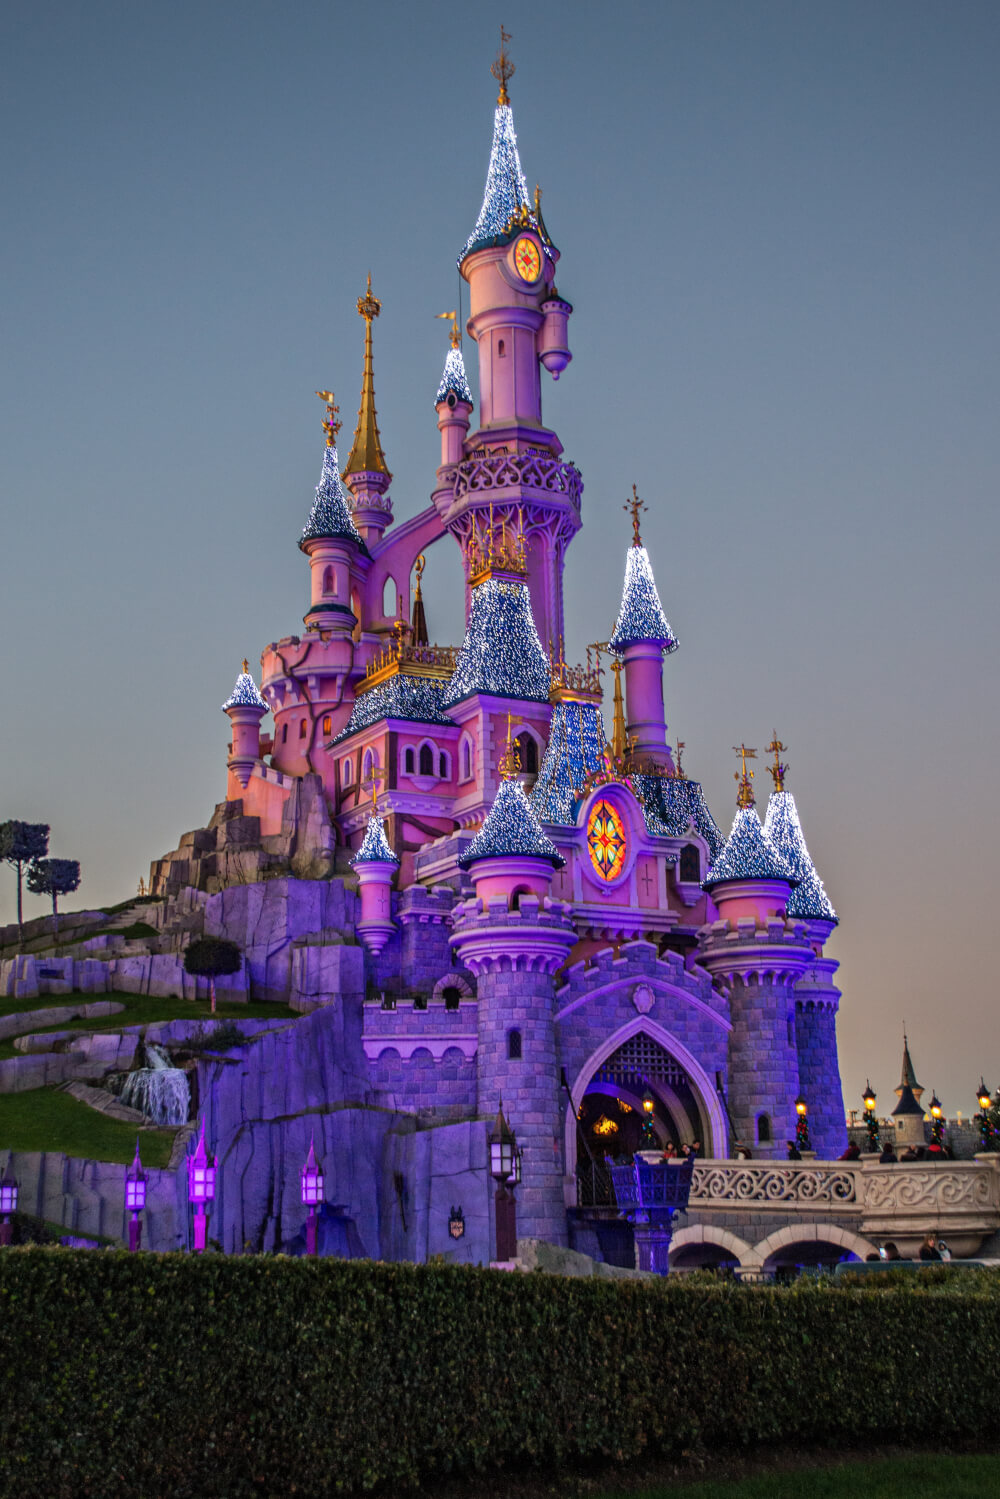 Christmas lights at the Disneyland Paris castle at Disneyland Park in Marne la Vallee, France